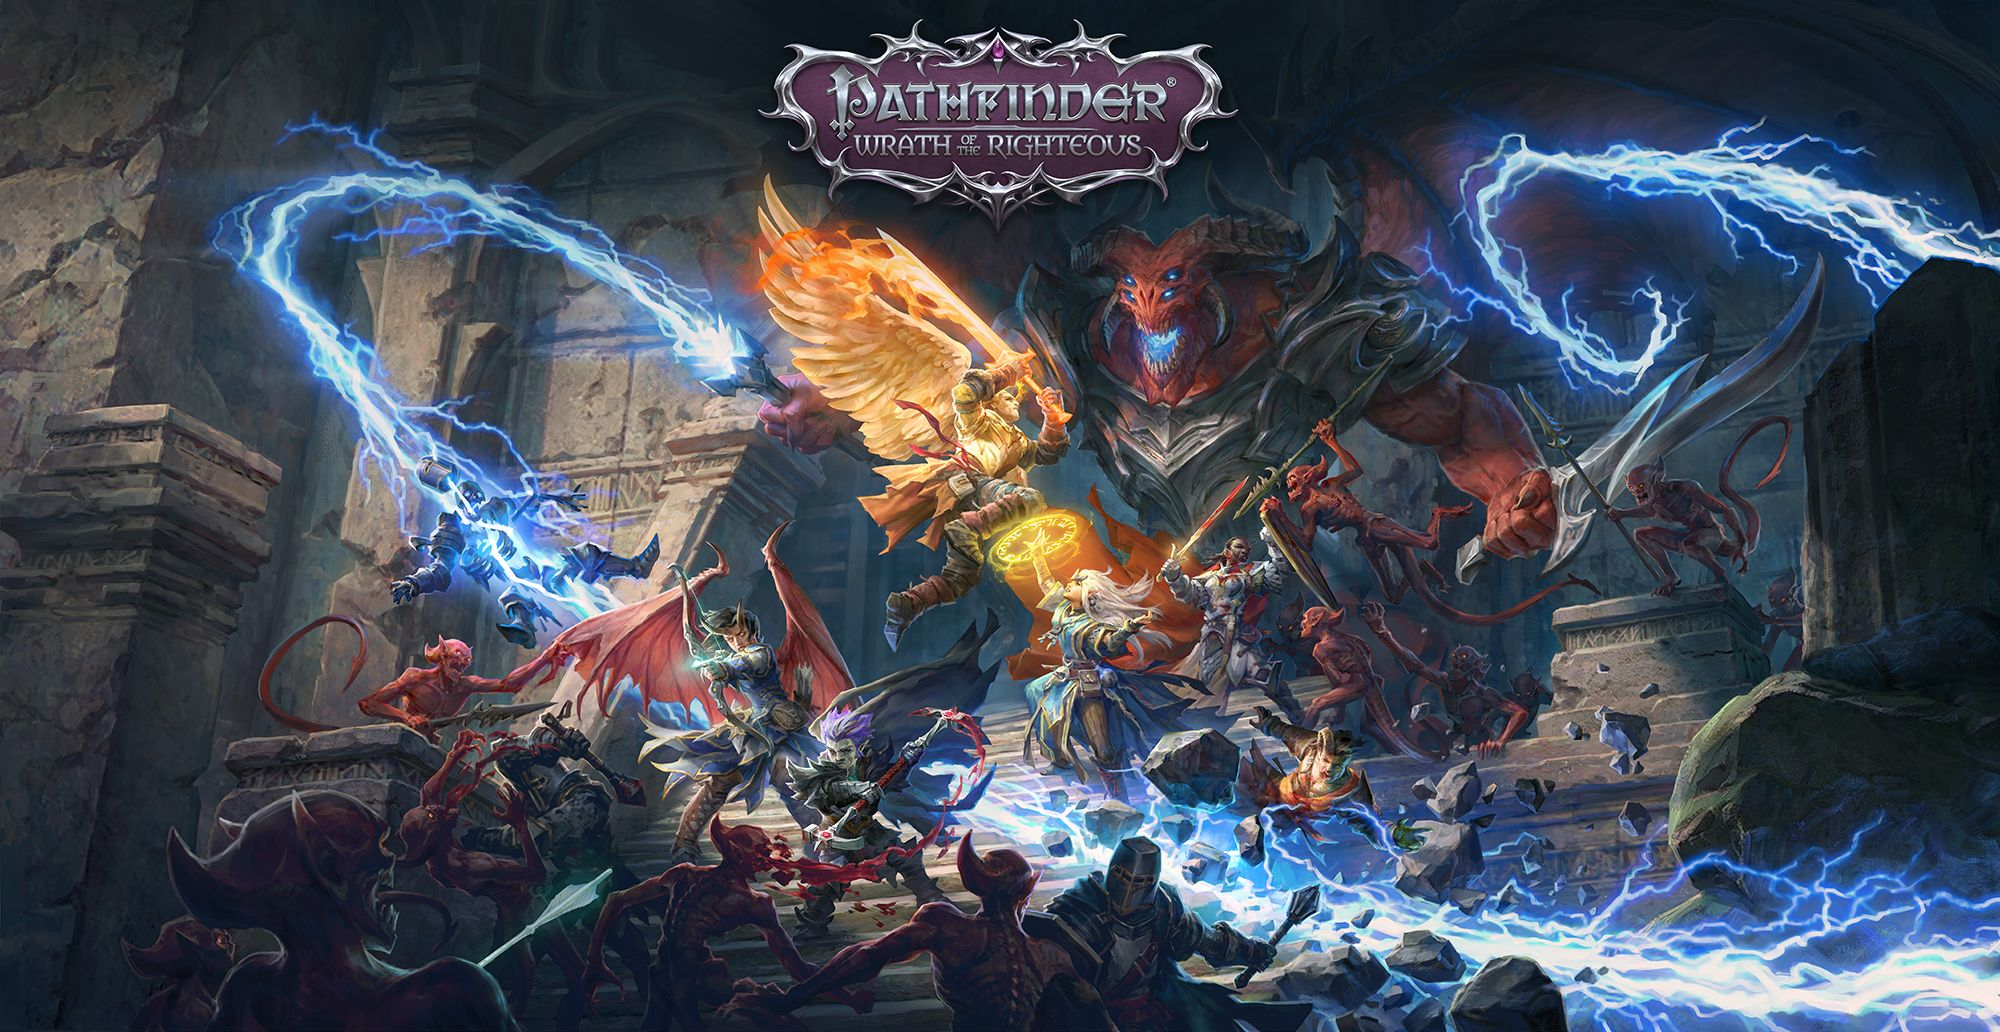 Krenula Kickstarter kampanja za Pathfinder: Wrath of the Righteous